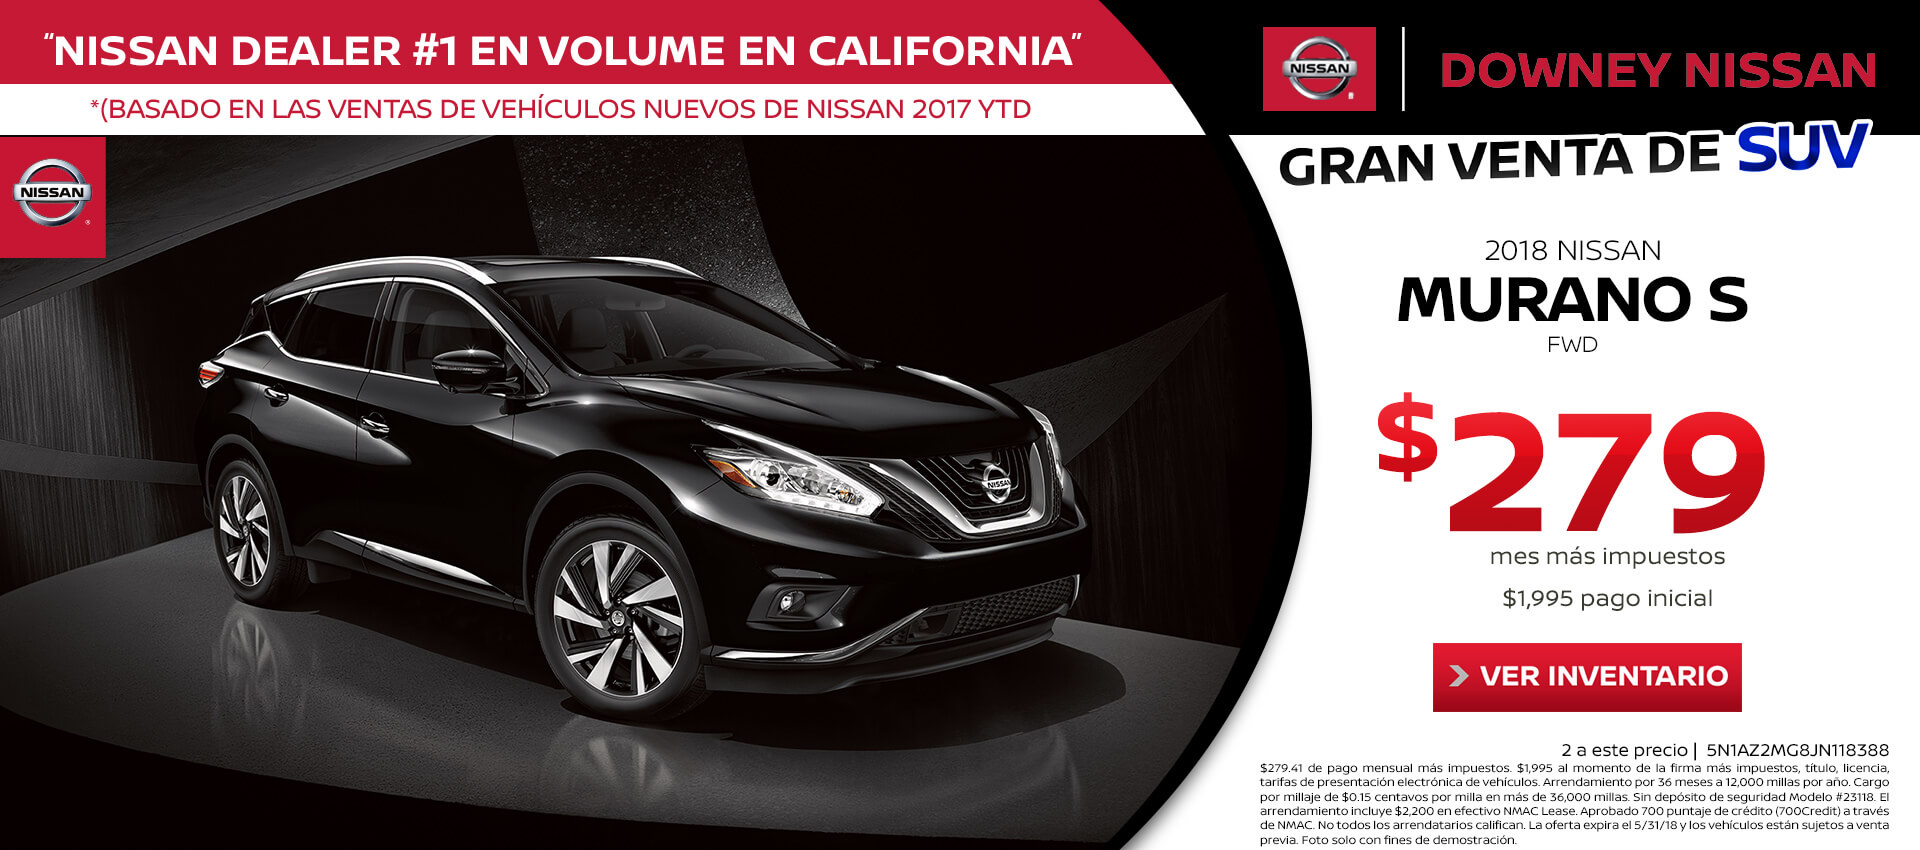 2018 Murano Lease for $279